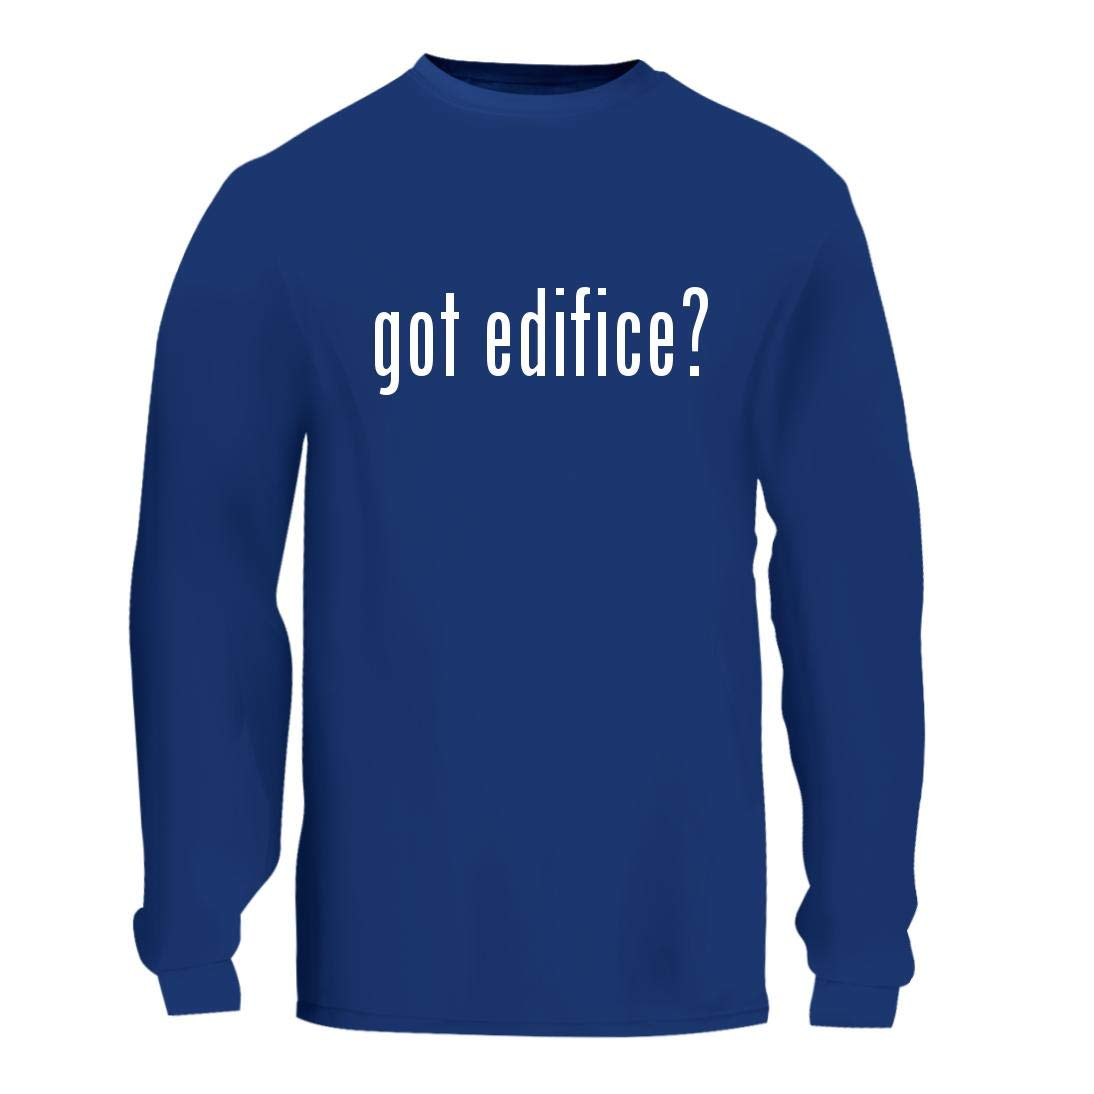 got Edifice? - A Nice Men's Long Sleeve T-Shirt Shirt, Blue, Large by Shirt Me Up